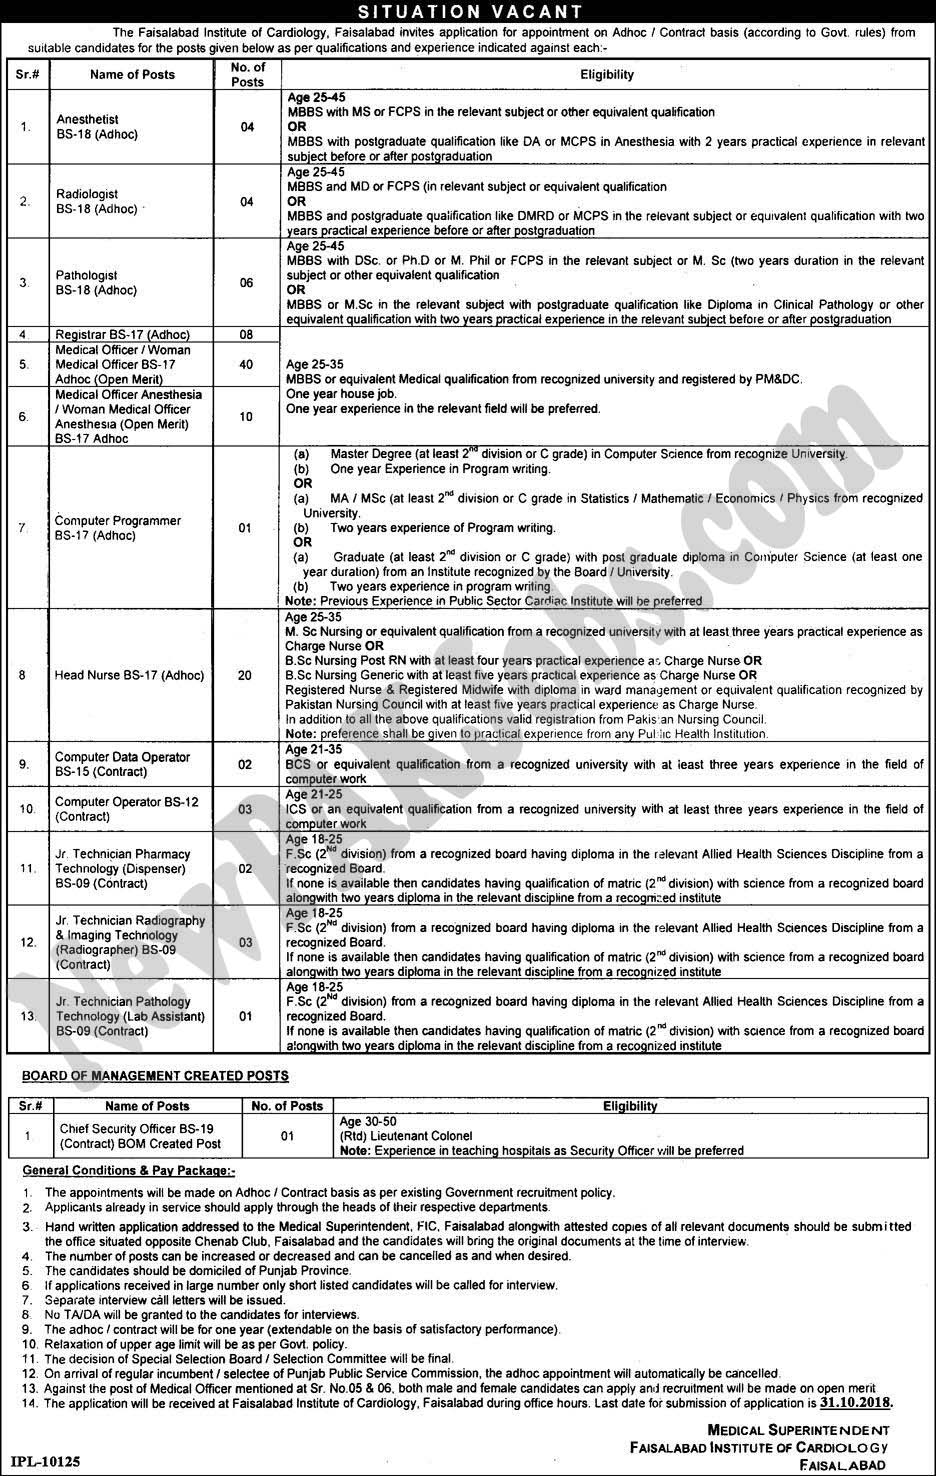 Jobs-in-Faisalabad-Institute-of-Cardiology-TODAY -14-Oct-2018